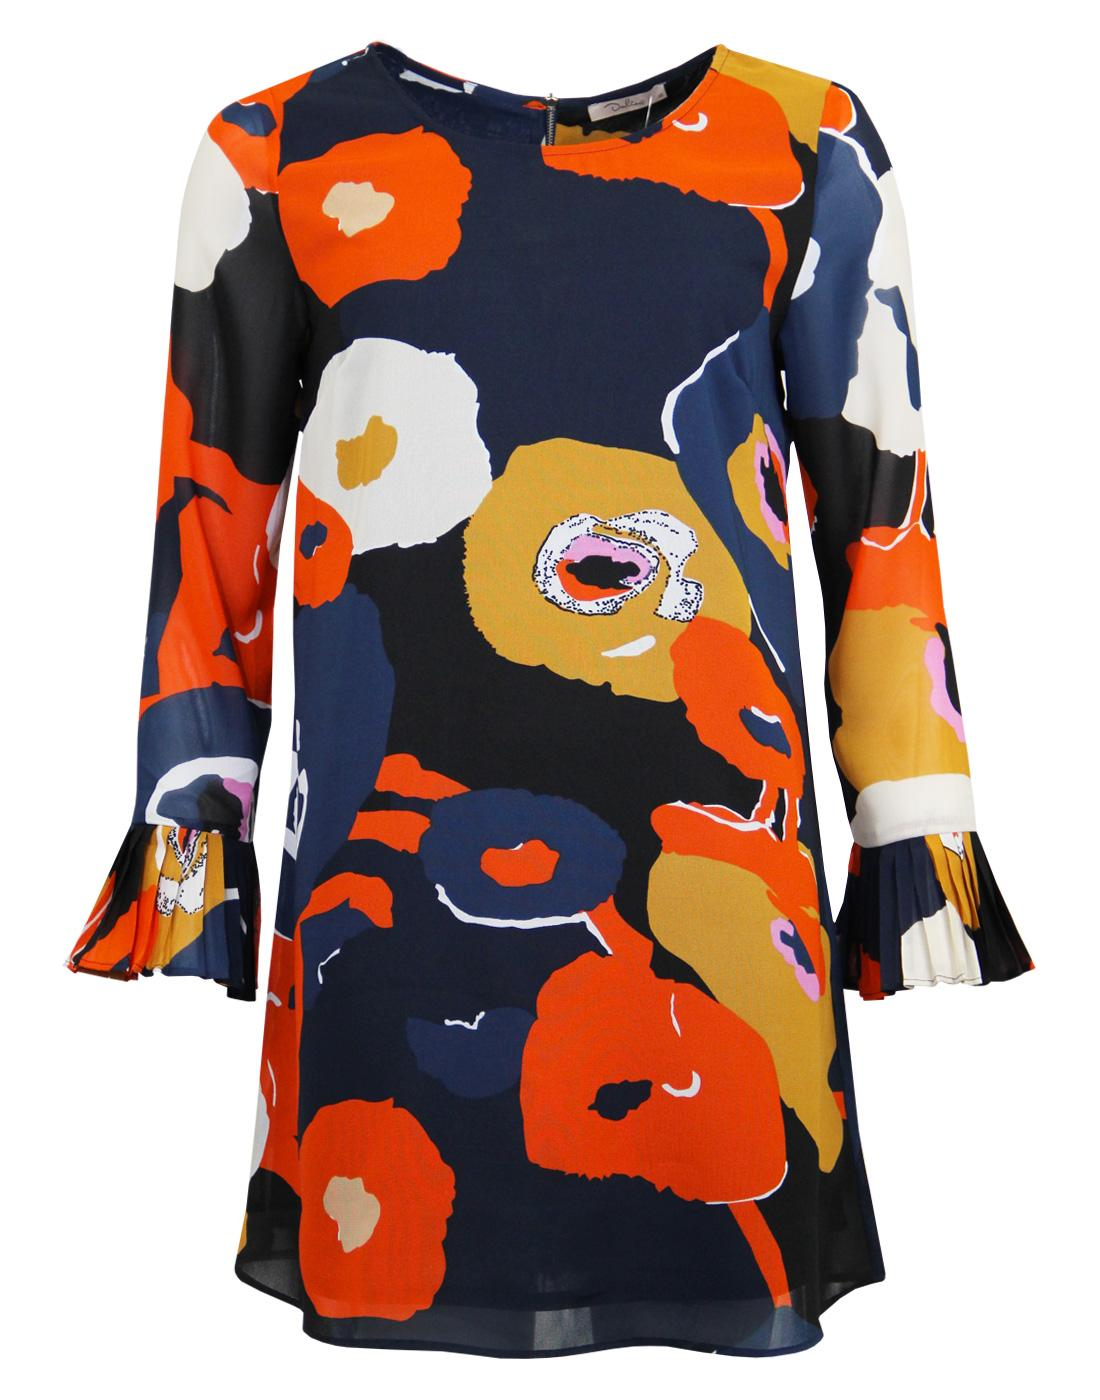 Floria DARLING Retro Abstract Floral Tunic Dress